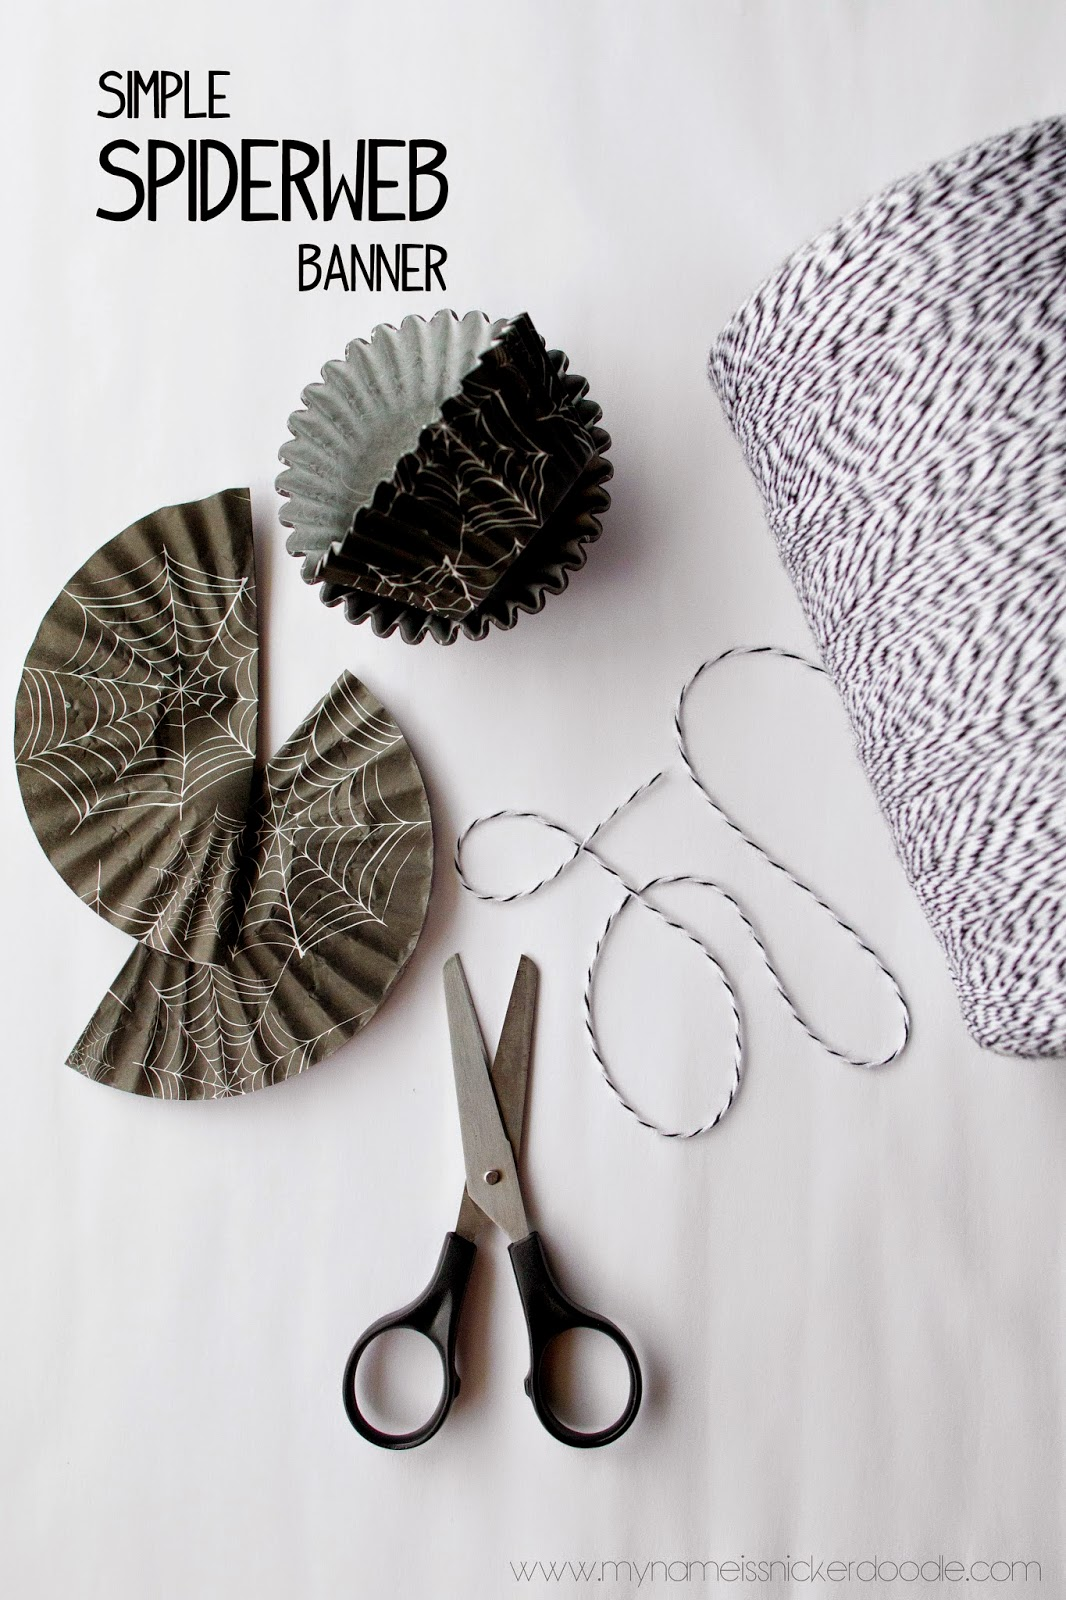 DIY Simple Spiderweb Banner Using Cupcake Liners | My Name Is Snickerdoodle